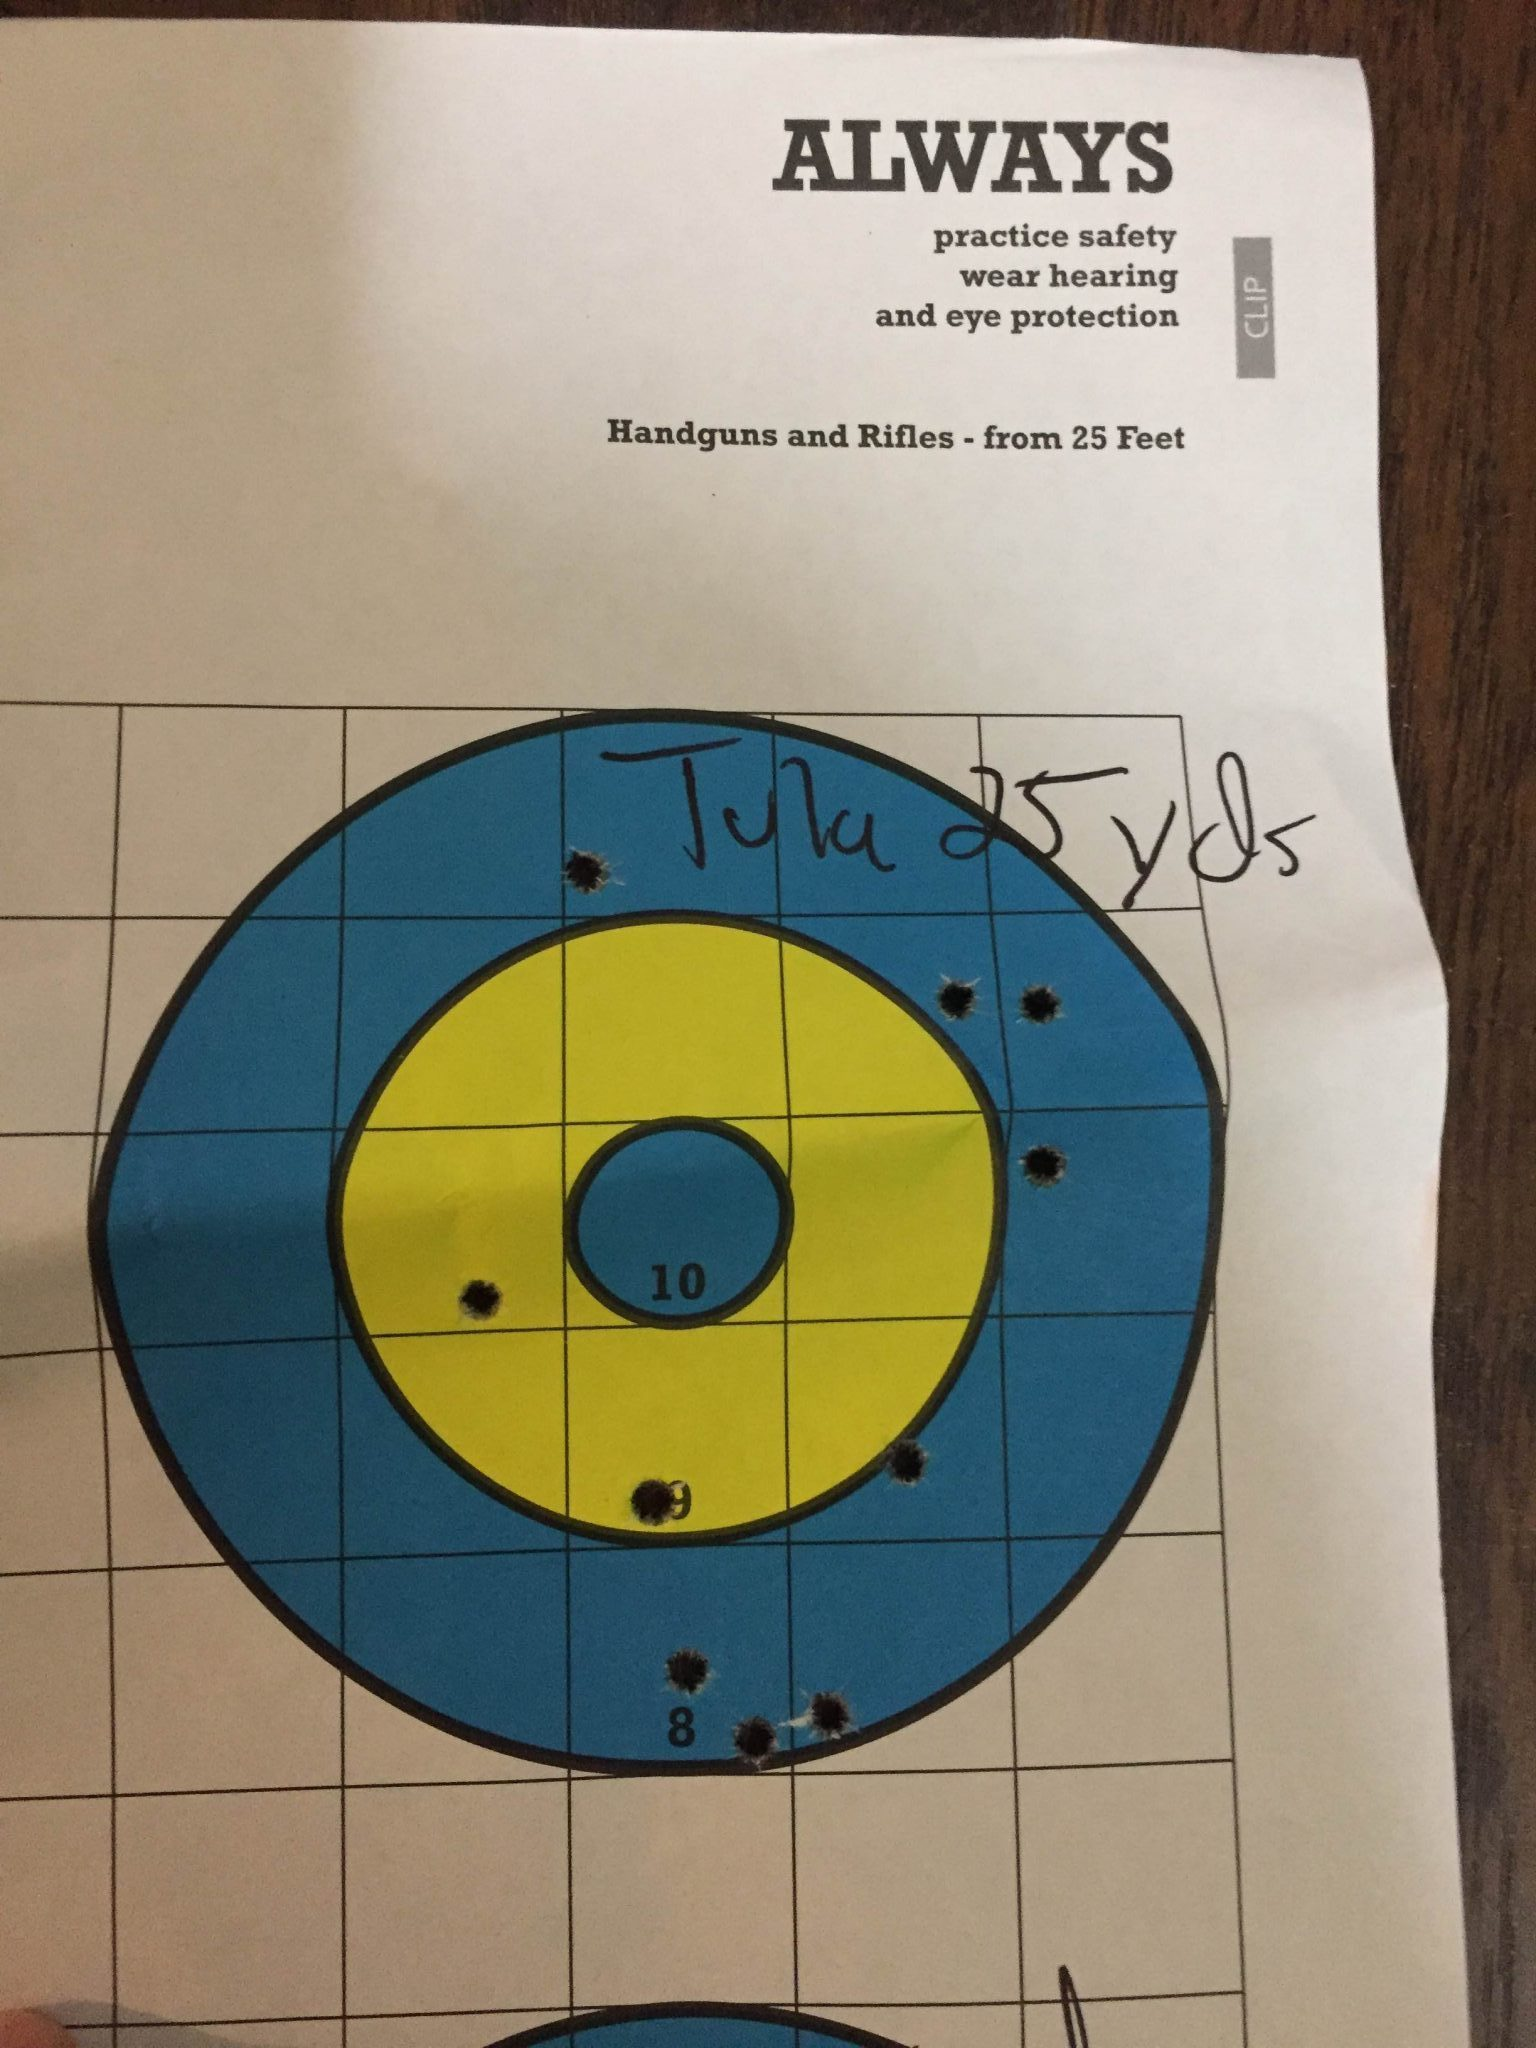 Tula @ 25 yds with Irons